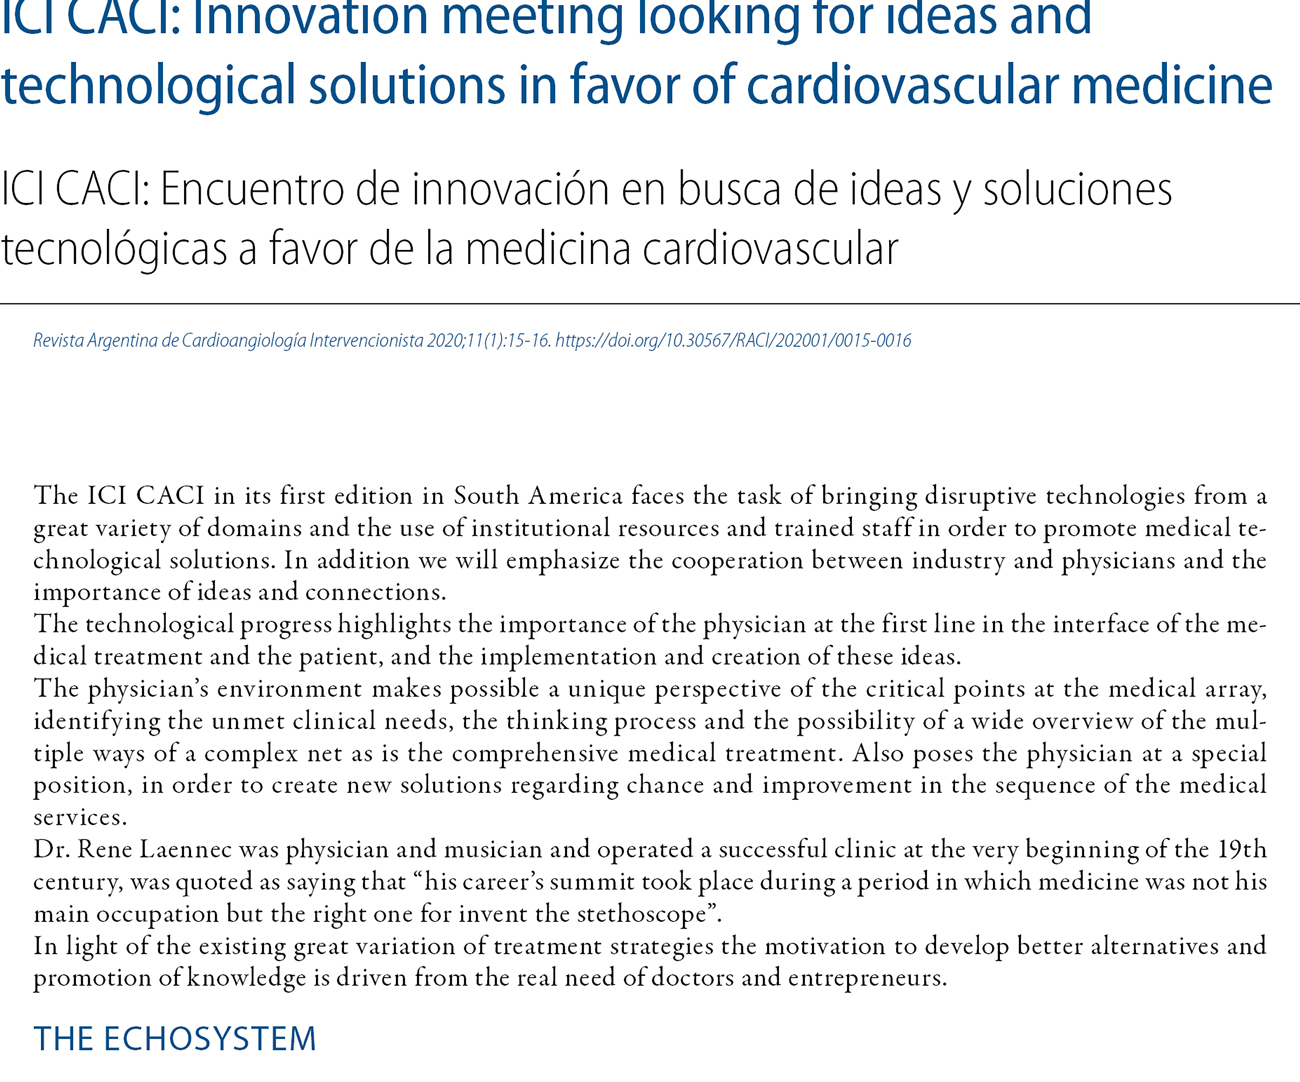 ICI CACI: Innovation meeting looking for ideas and technological solutions in favor of cardiovascular medicine